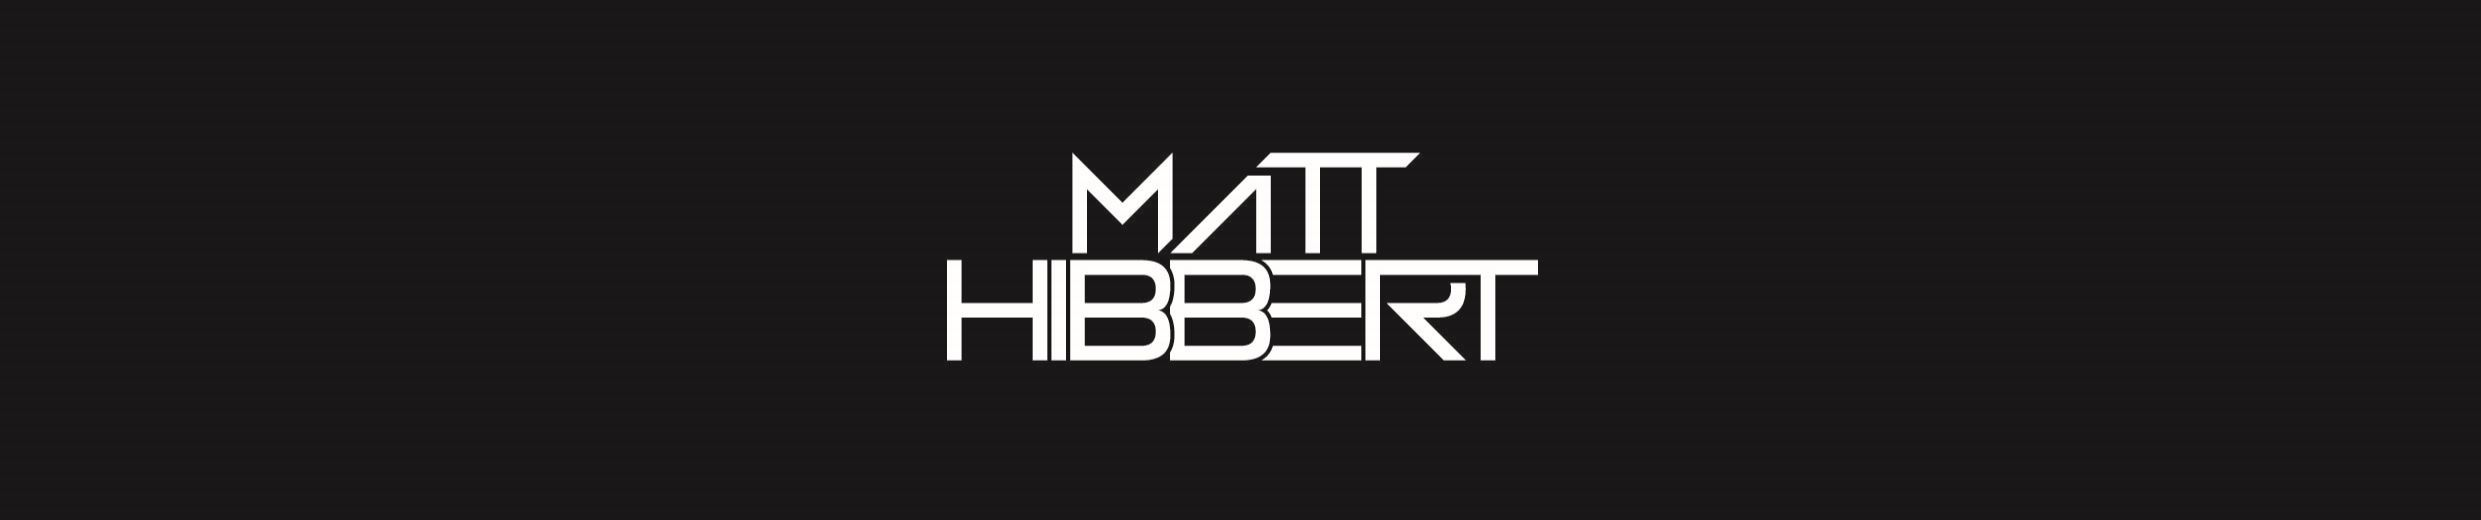 Swedish House Mafia Greatest Hits by Matt Hibbert | Free